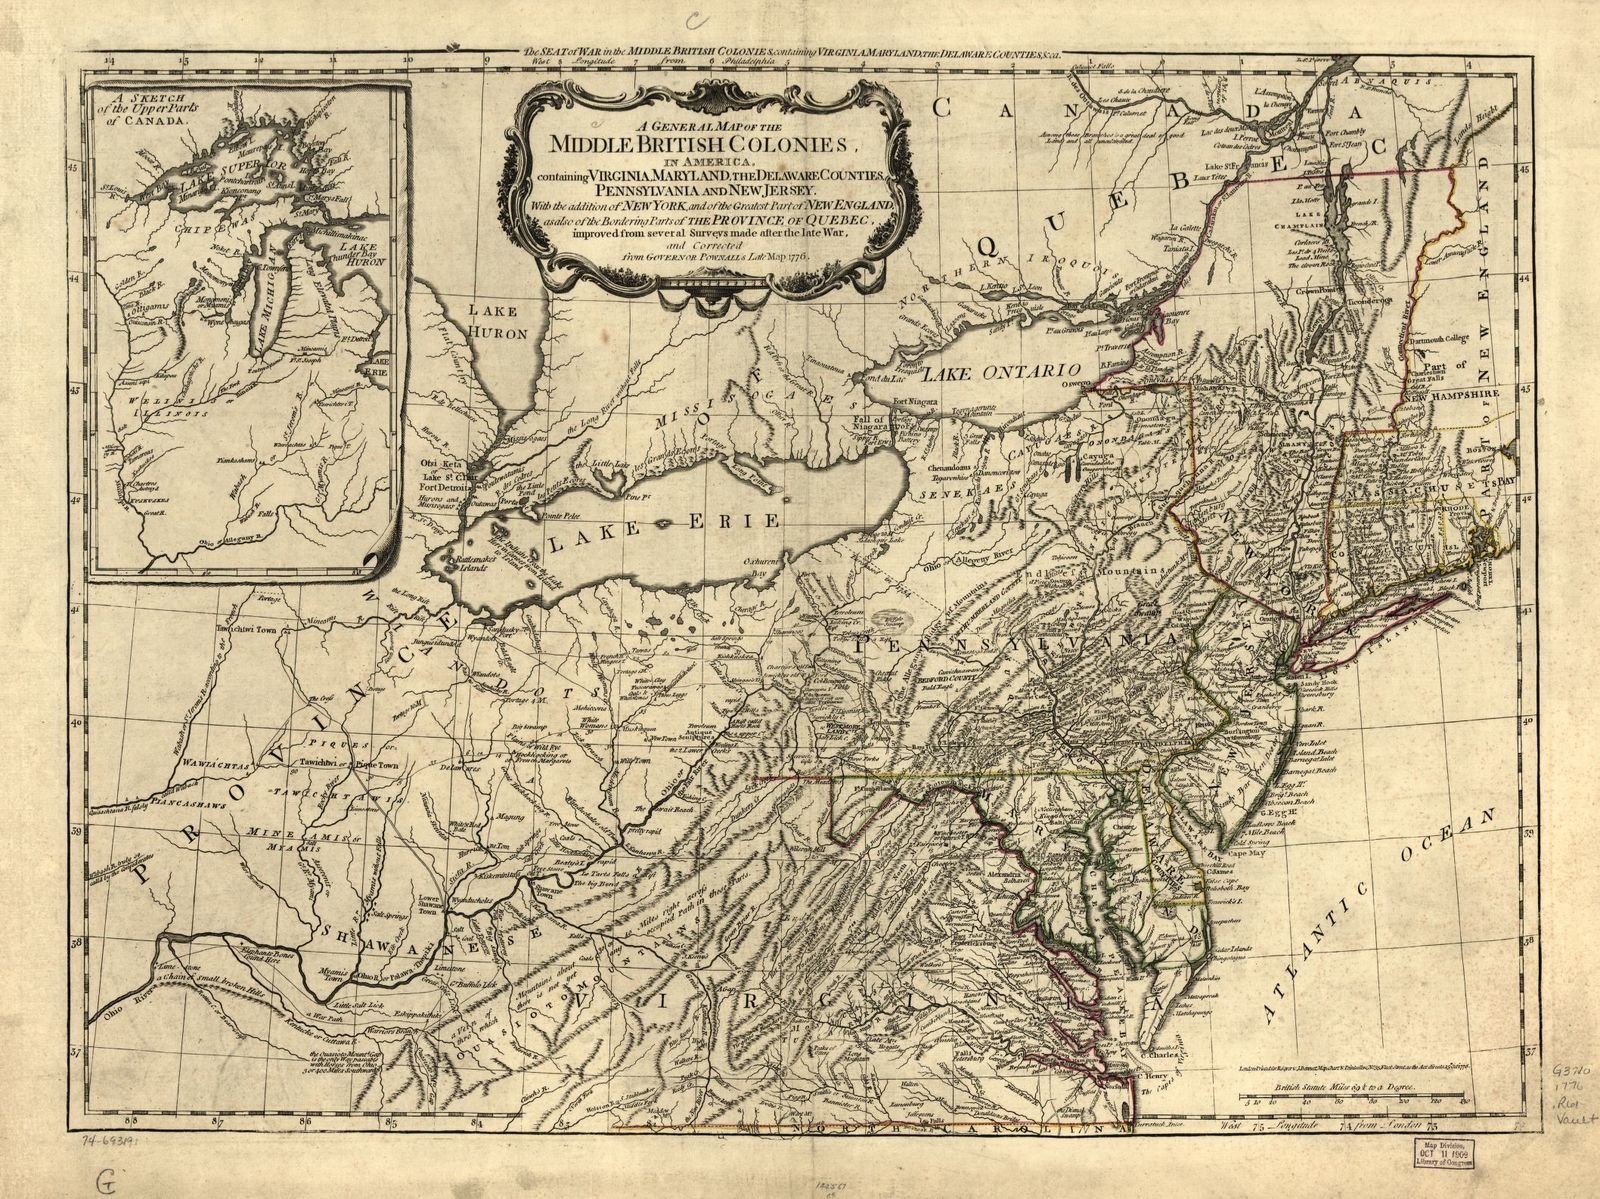 A general map of the middle British colonies, in America. Containing on map of maryland cities, map of states and territories of australia, map of states of the us, map of maryland eastern shore, mapquest maryland counties, google maps maryland counties, map of delaware and maryland, map of baltimore, maryland map with counties, map of maryland state, map of maryland colleges and universities, map of maryland zip codes, map of margibi, map of maryland legislative districts, map of lofa, map of maryland community colleges, map of howard county, map of maryland and virginia, map of anne arundel county, map of maryland lakes,